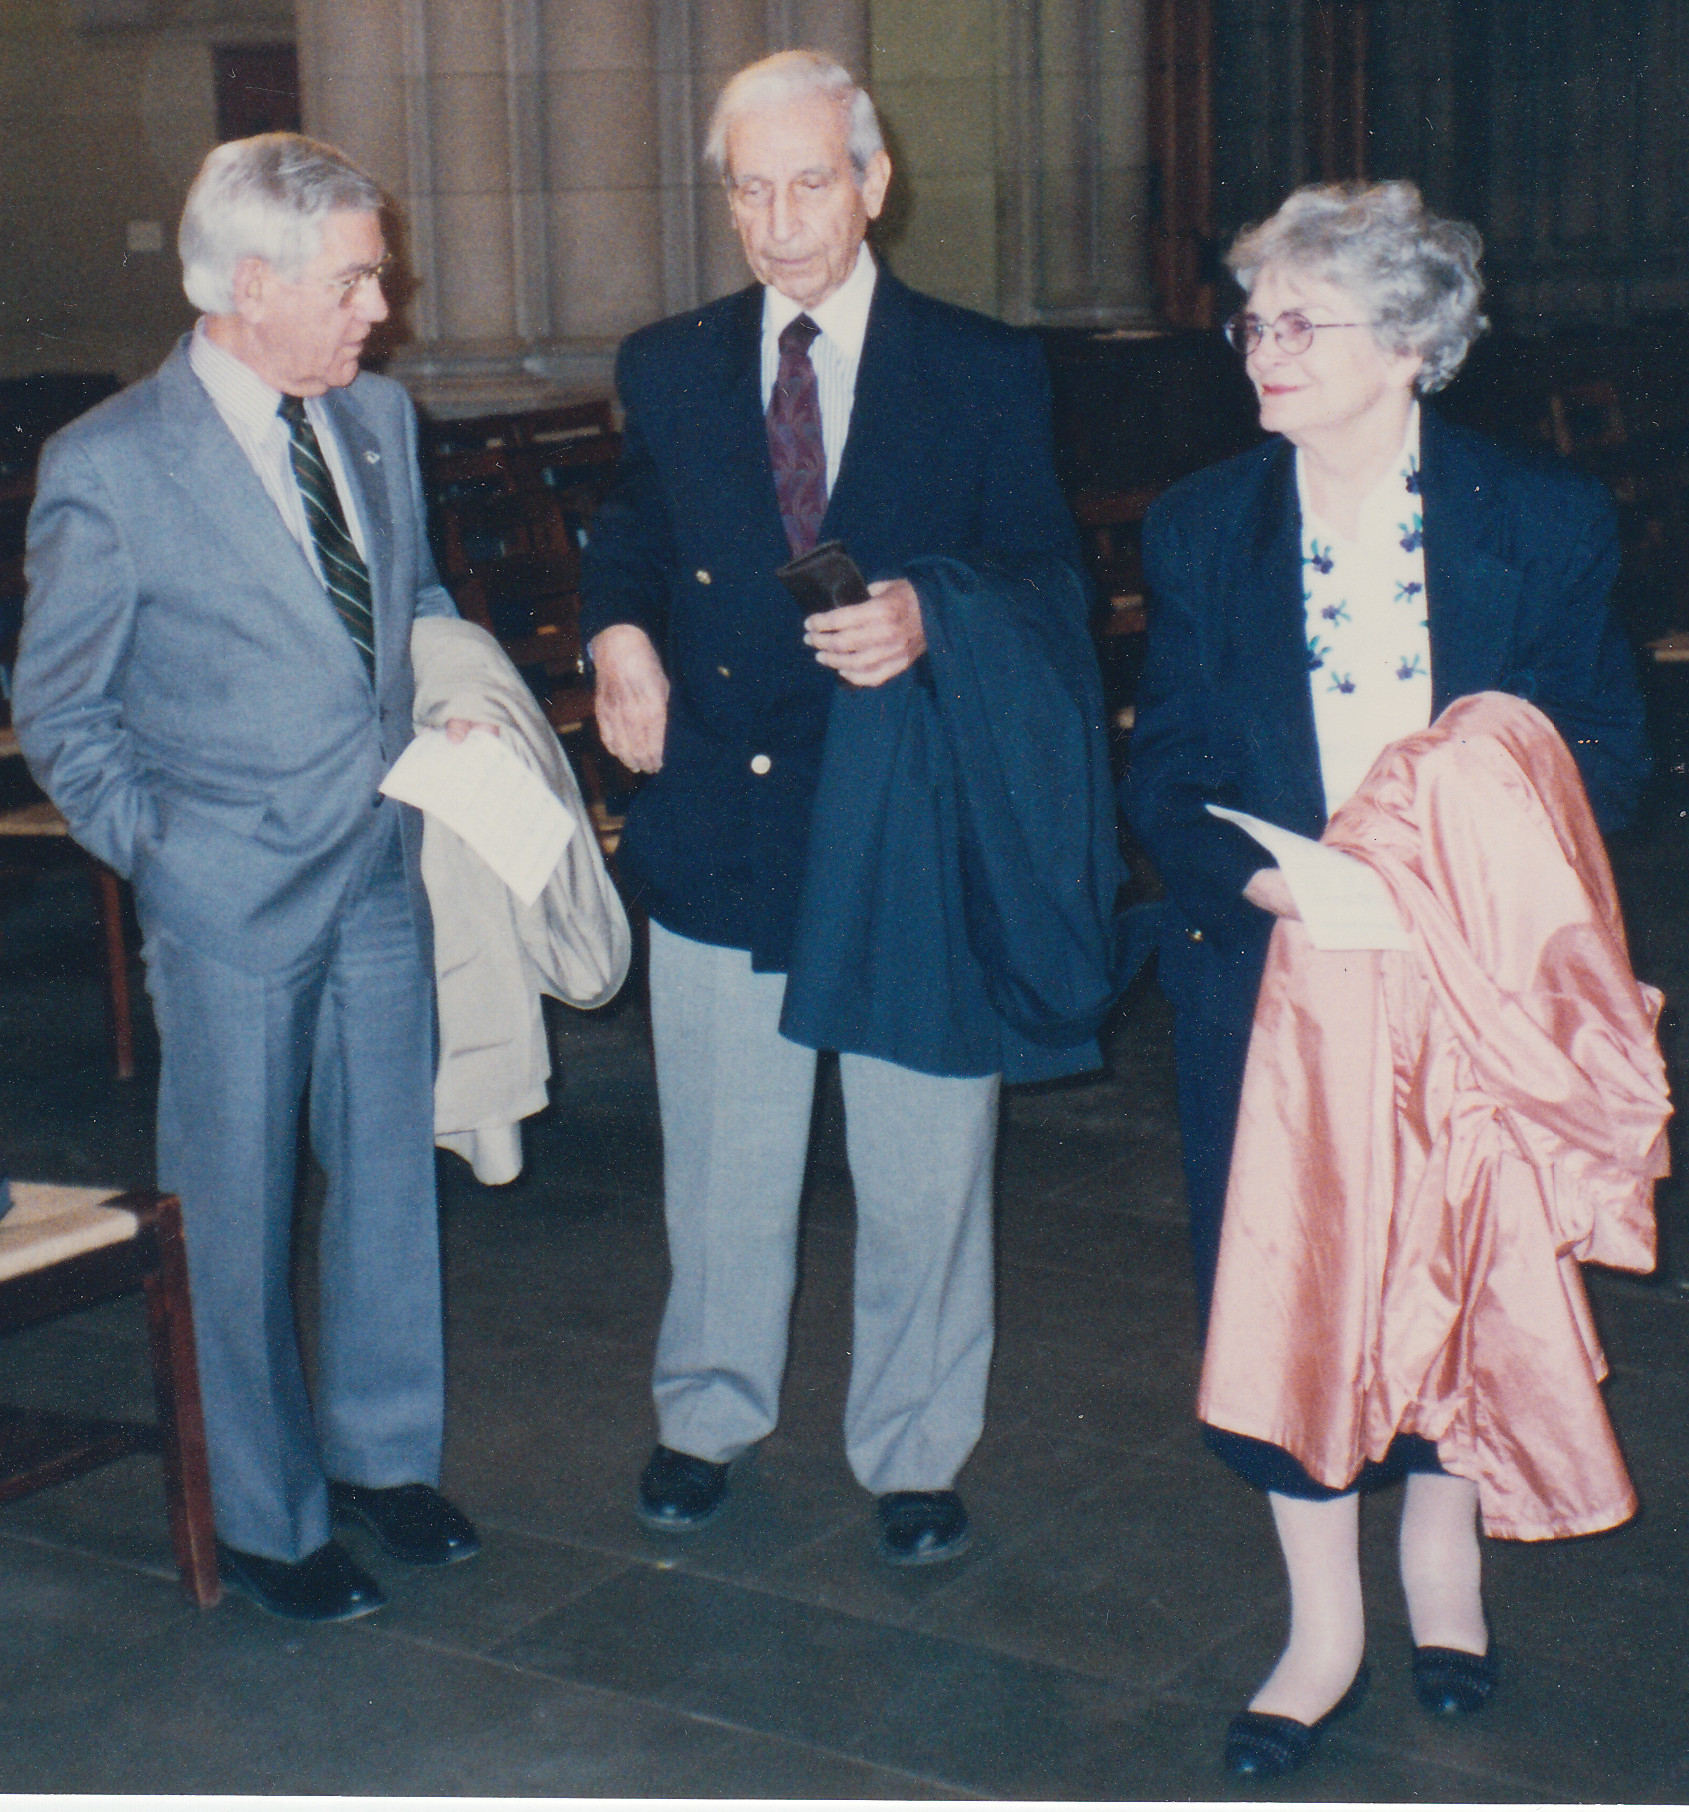 photo of Allen Sanders, Walter Westafer, and Maple Sanders